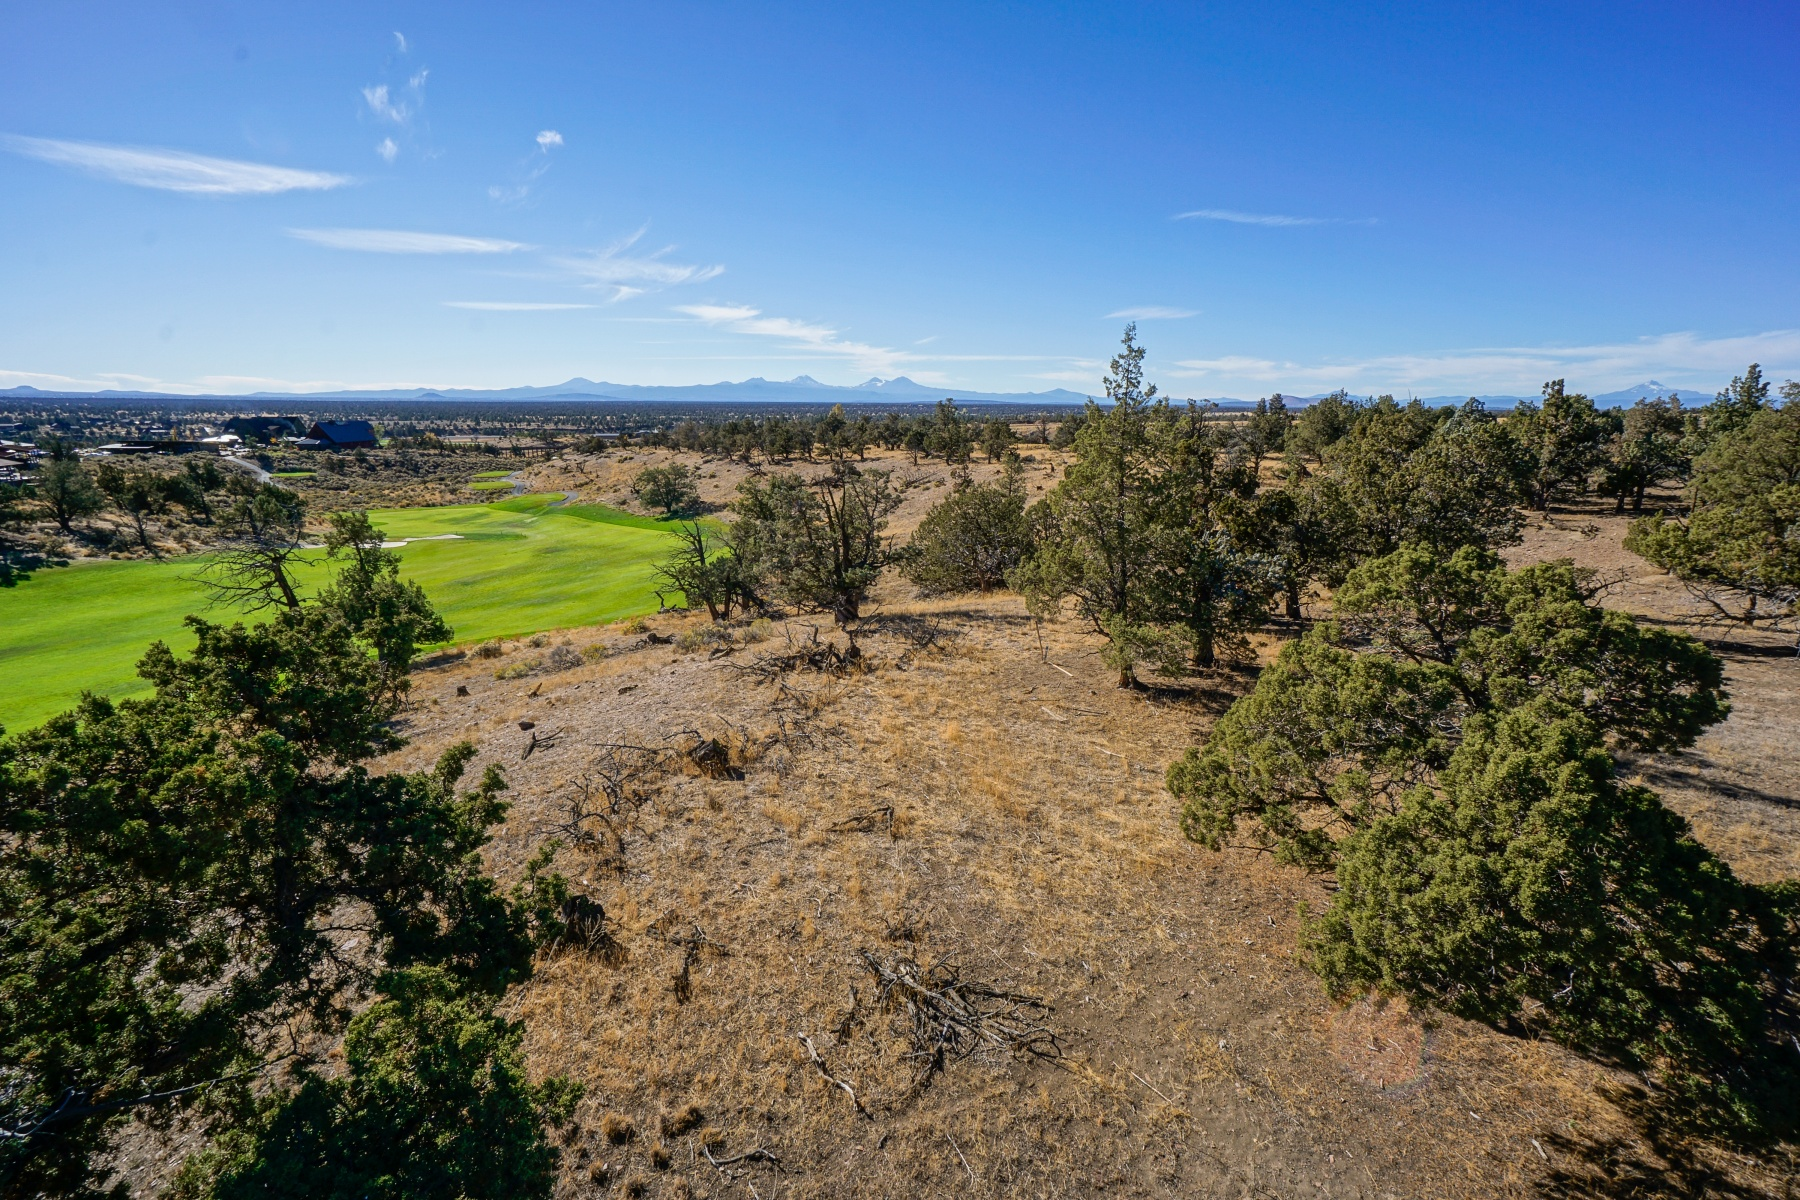 Terreno por un Venta en Golf Course and Mtn View Building Site in Brasada 15720 SW Wooden Trestle Ct Lot 25 Powell Butte, Oregon, 97753 Estados Unidos